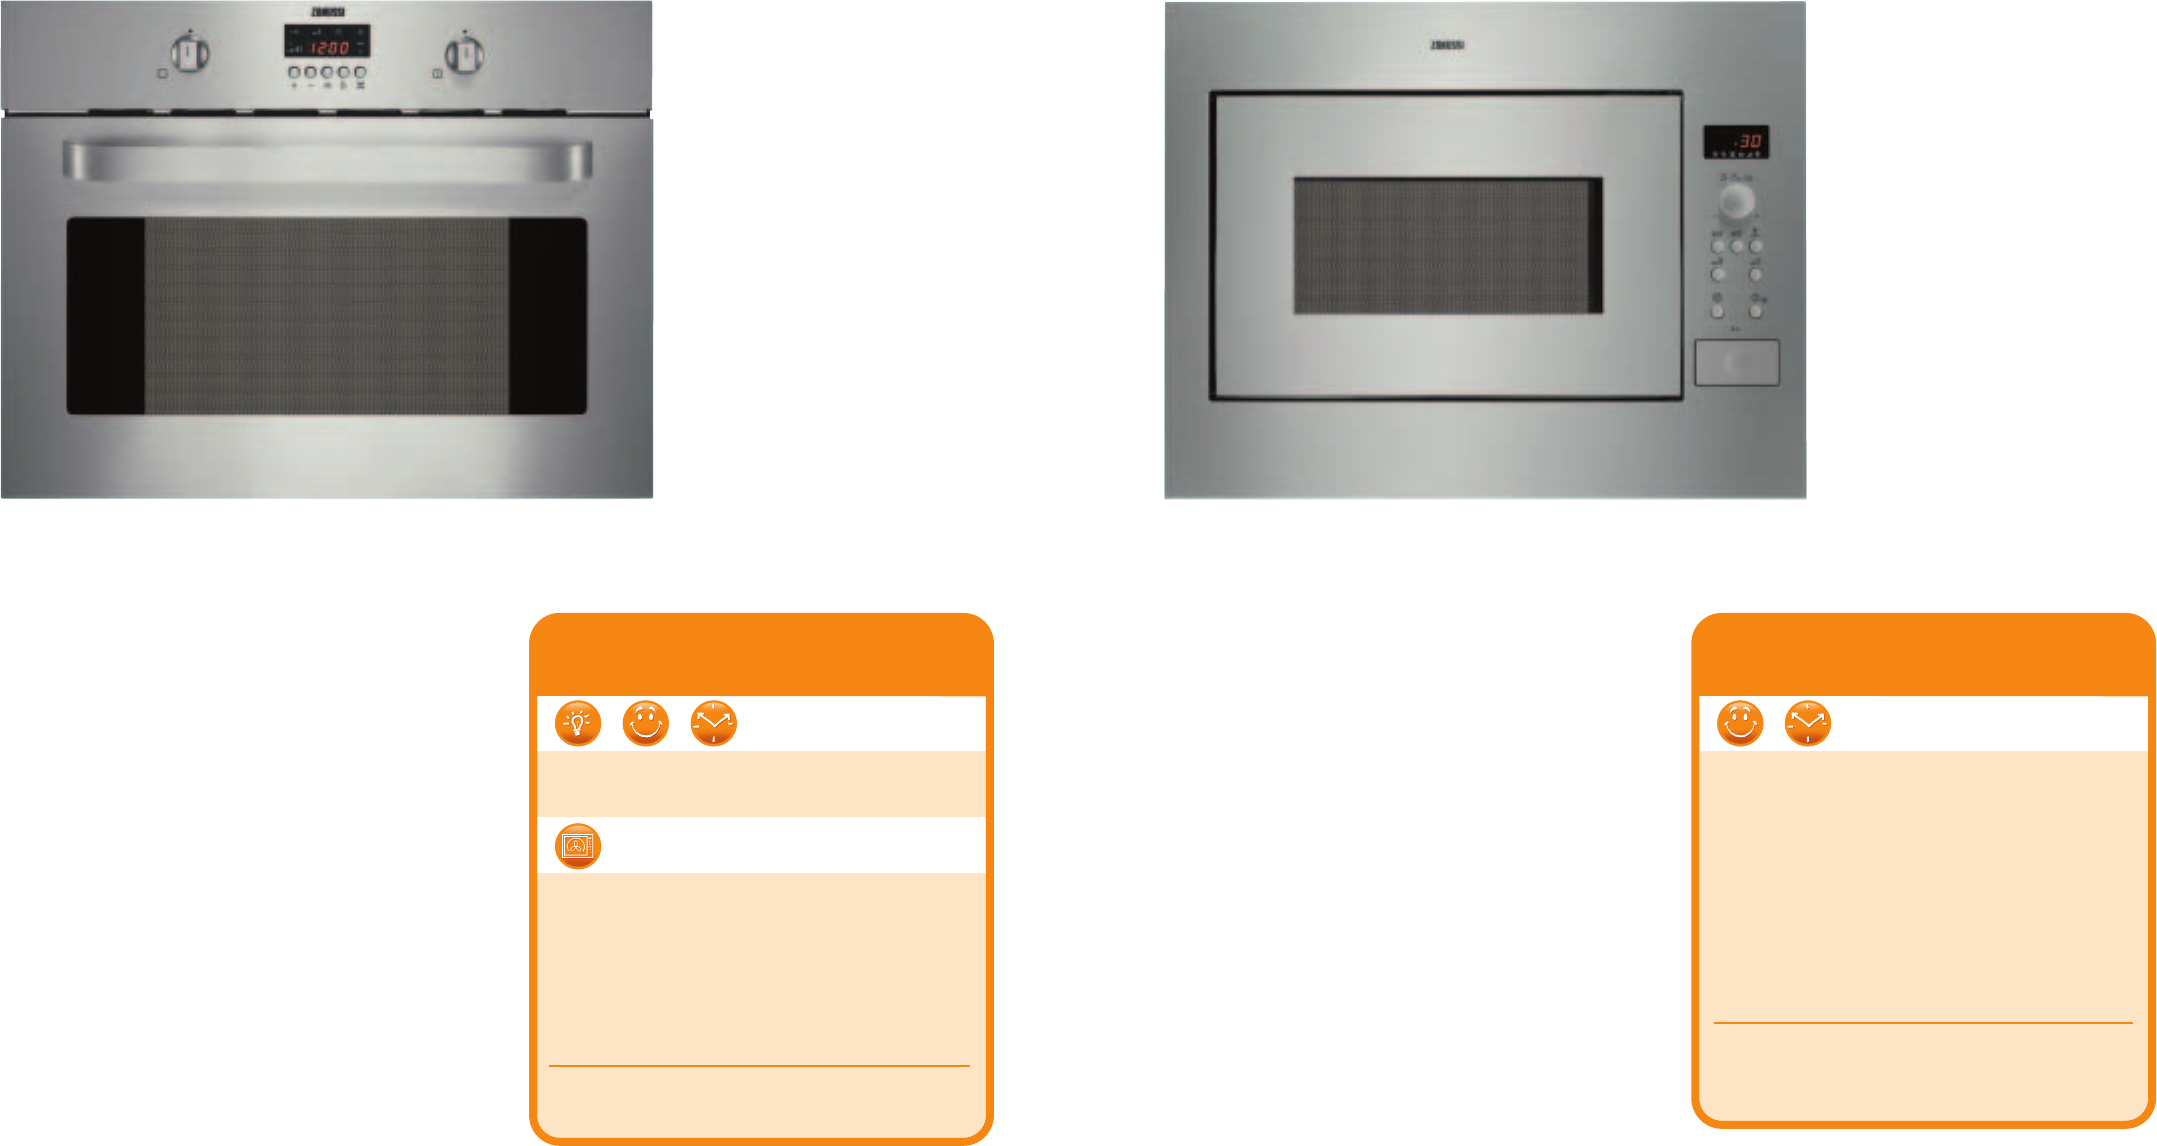 page 3 of zanussi microwave oven znm11 user guide manualsonline com rh kitchen manualsonline com zanussi oven user manual zanussi oven user manual